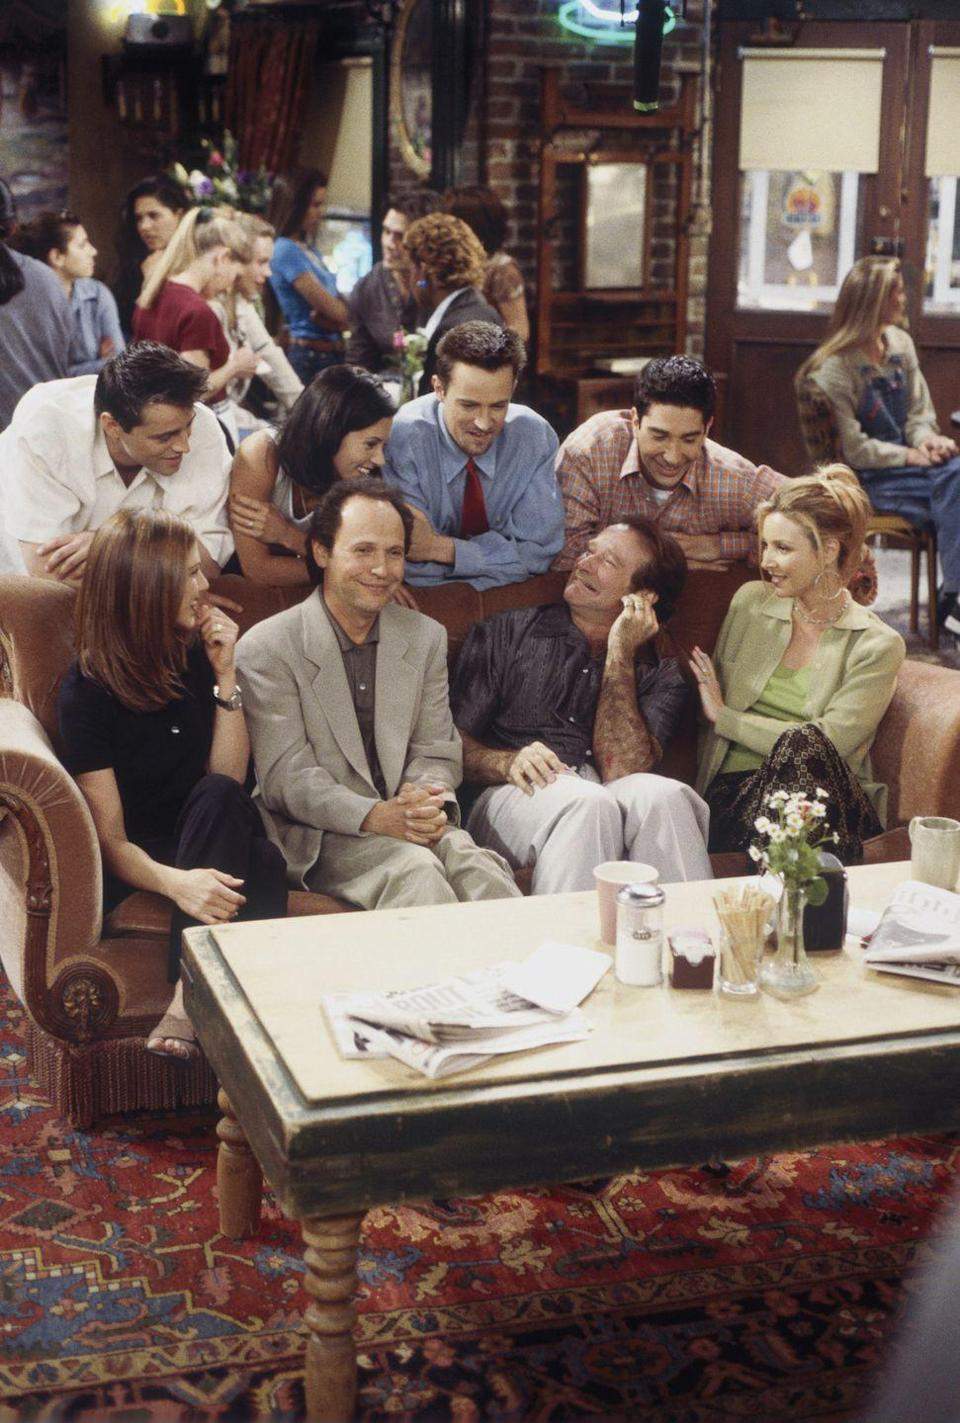 "<p>It was by chance that Billy Crystal and Robin Williams happened to be on the same lot as <em>Friends</em> when the cast was filming ""The One with the Ultimate Fighting Champion"" in season 3. The comedians decided to stop by for a cup of coffee, during which an improvised conversation unfolds, leaving both the cast and audience in stitches.</p>"